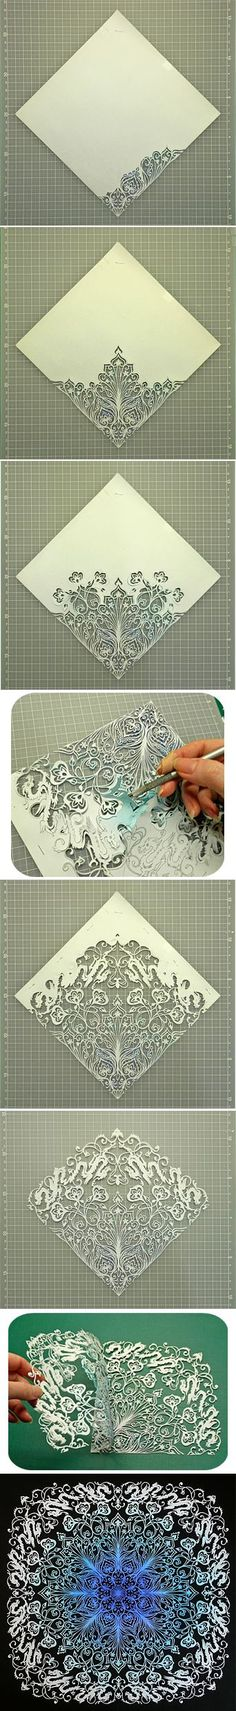 [] Japanese Kirigami Art (Cut Paper) tutorial (pictures only) by Syandery. (Link does not go to tutorial/images) Origami And Kirigami, Origami Paper, Diy Paper, Paper Quilling, Paper Cutting, Craft Robo, Diy And Crafts, Arts And Crafts, Papier Diy